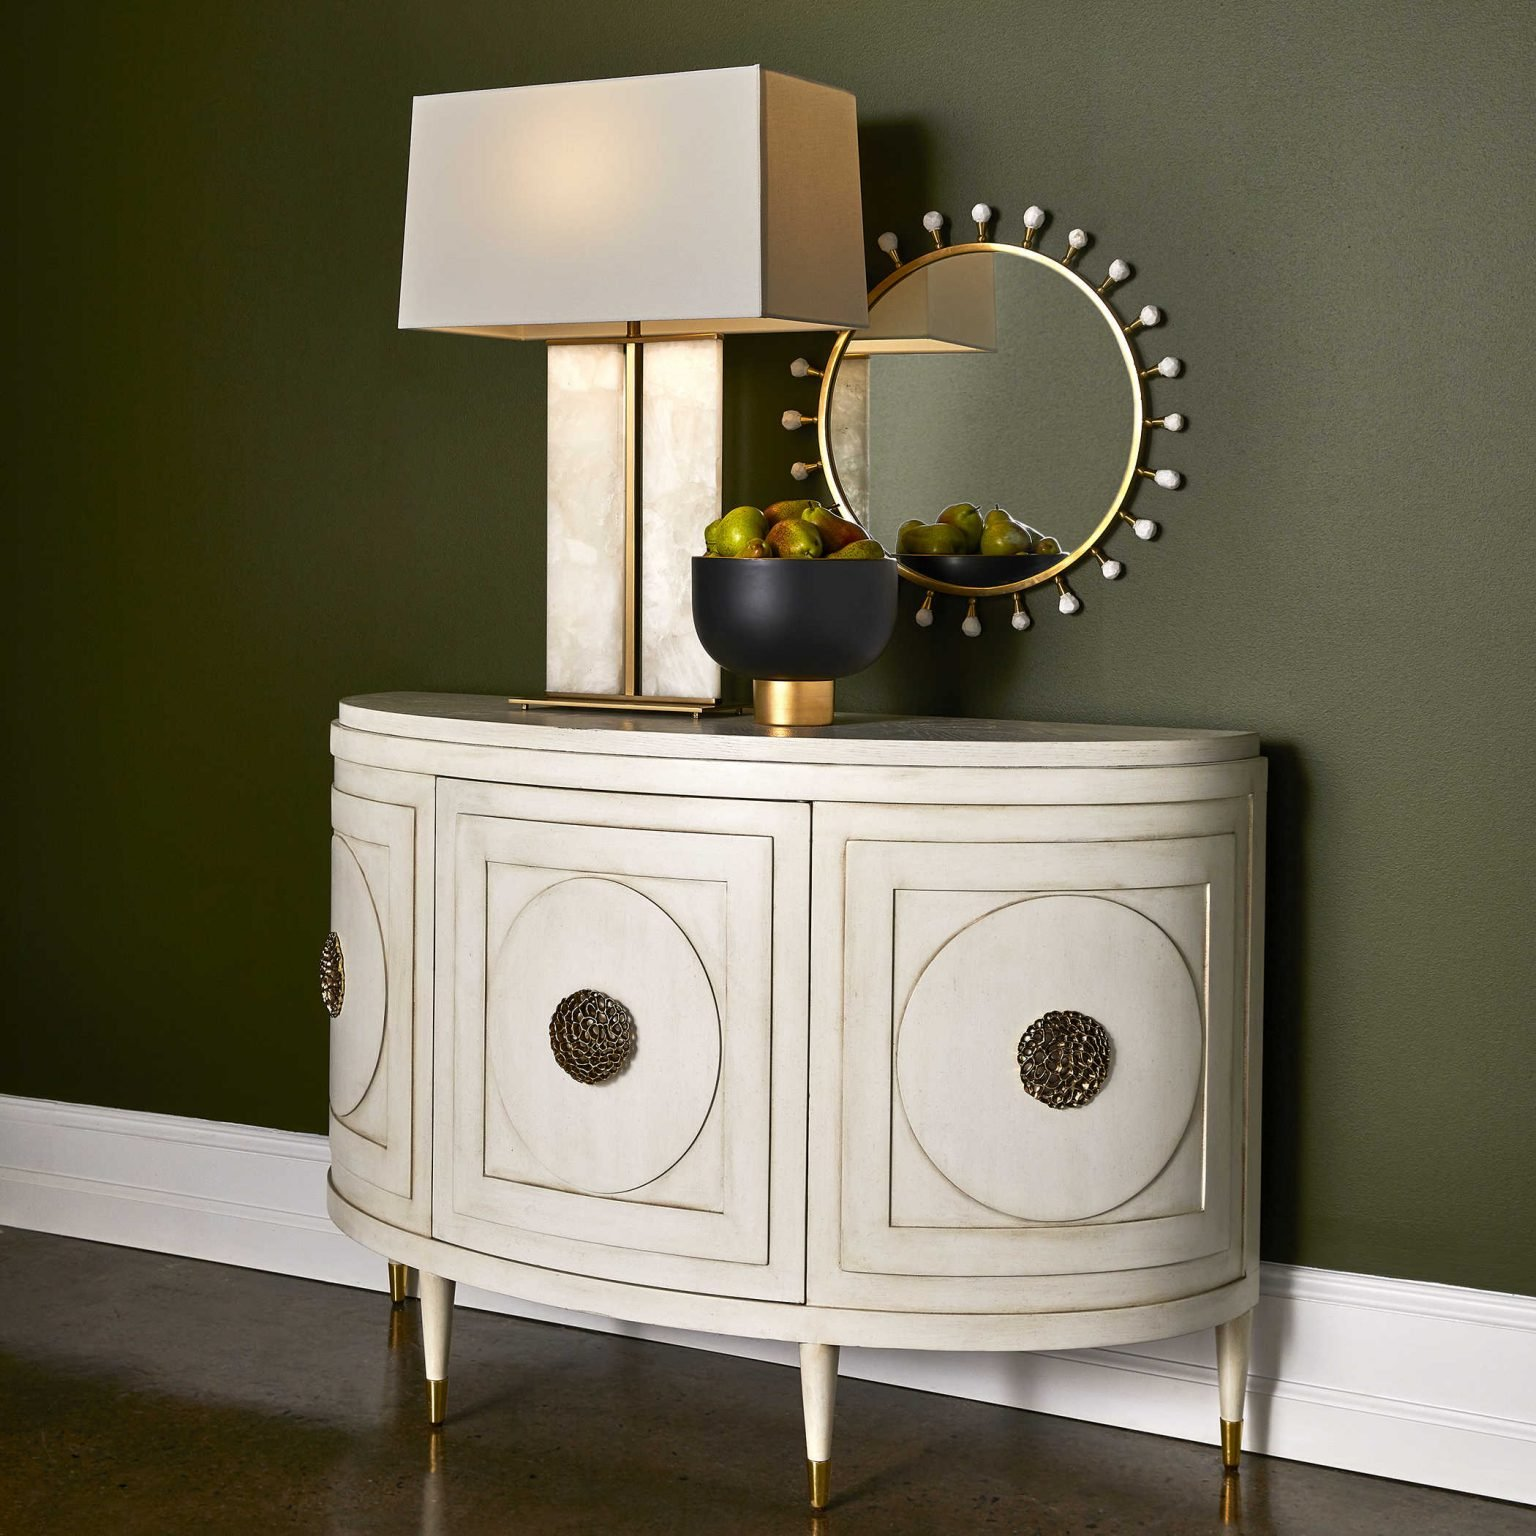 Vintage console table with geometric shapes fits in perfectly with the granny chic interior decor trend